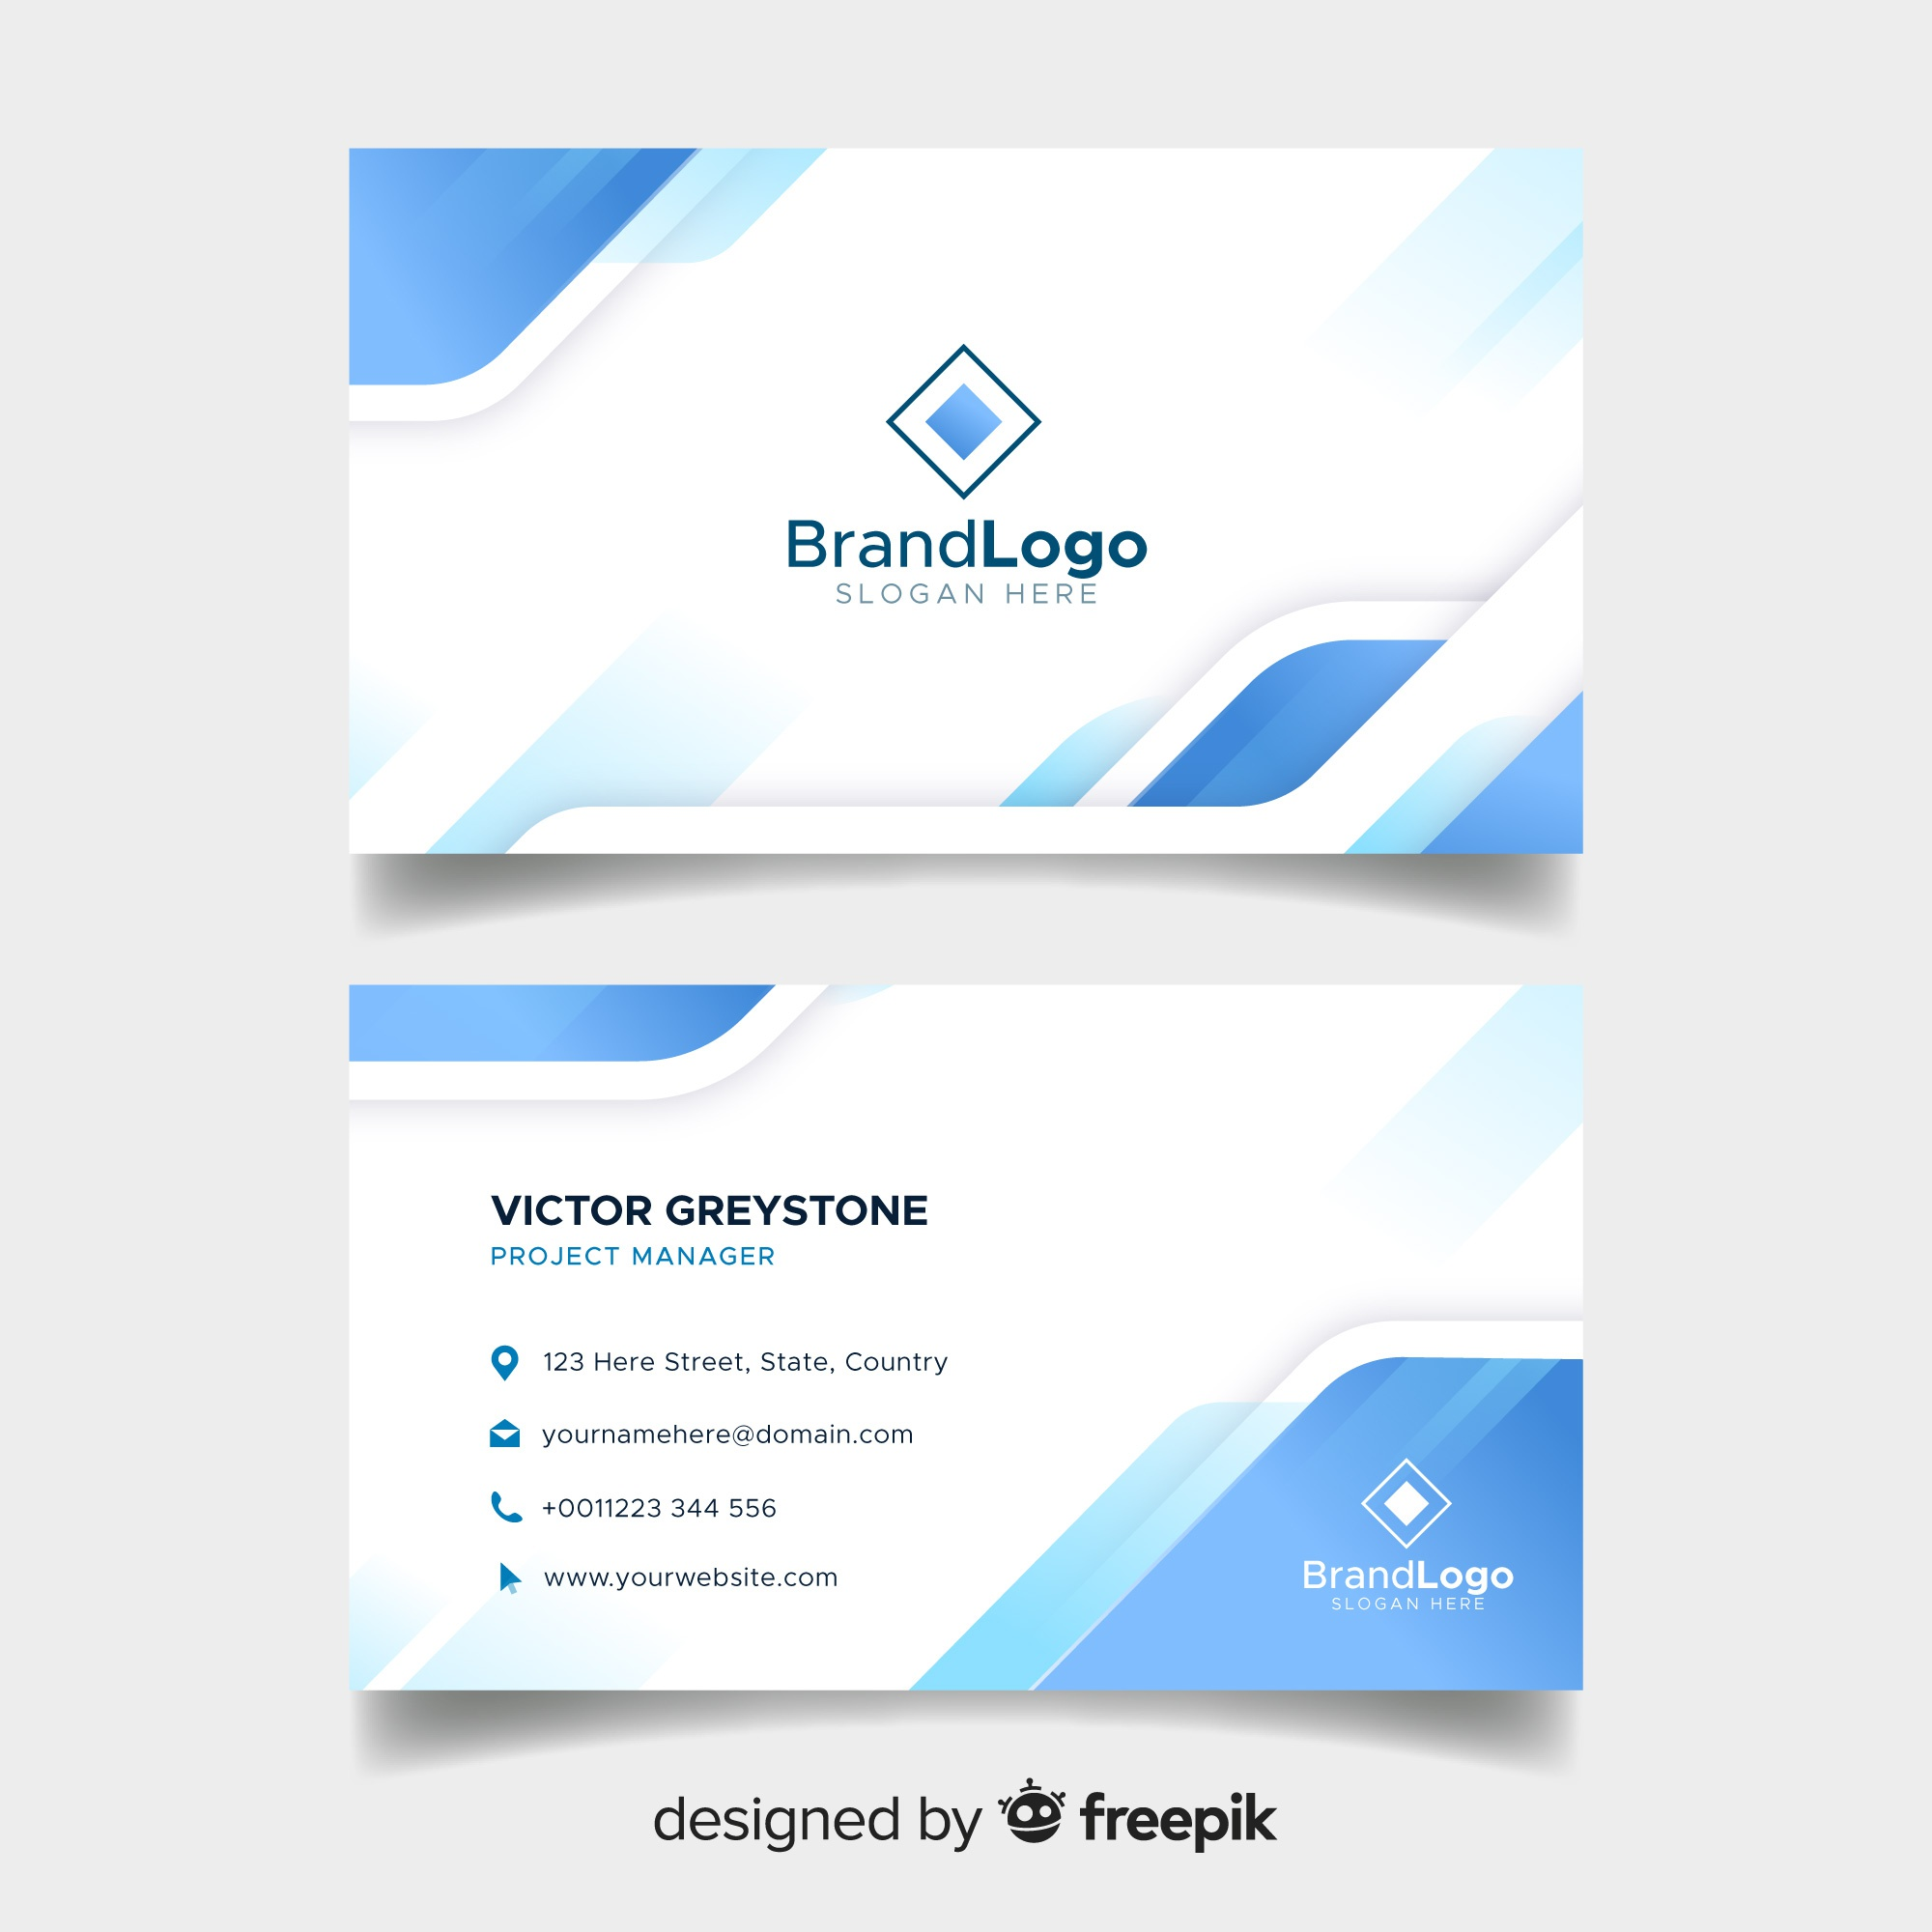 Business vectors 190500 free files in eps format elegant business card template with geometric design friedricerecipe Choice Image